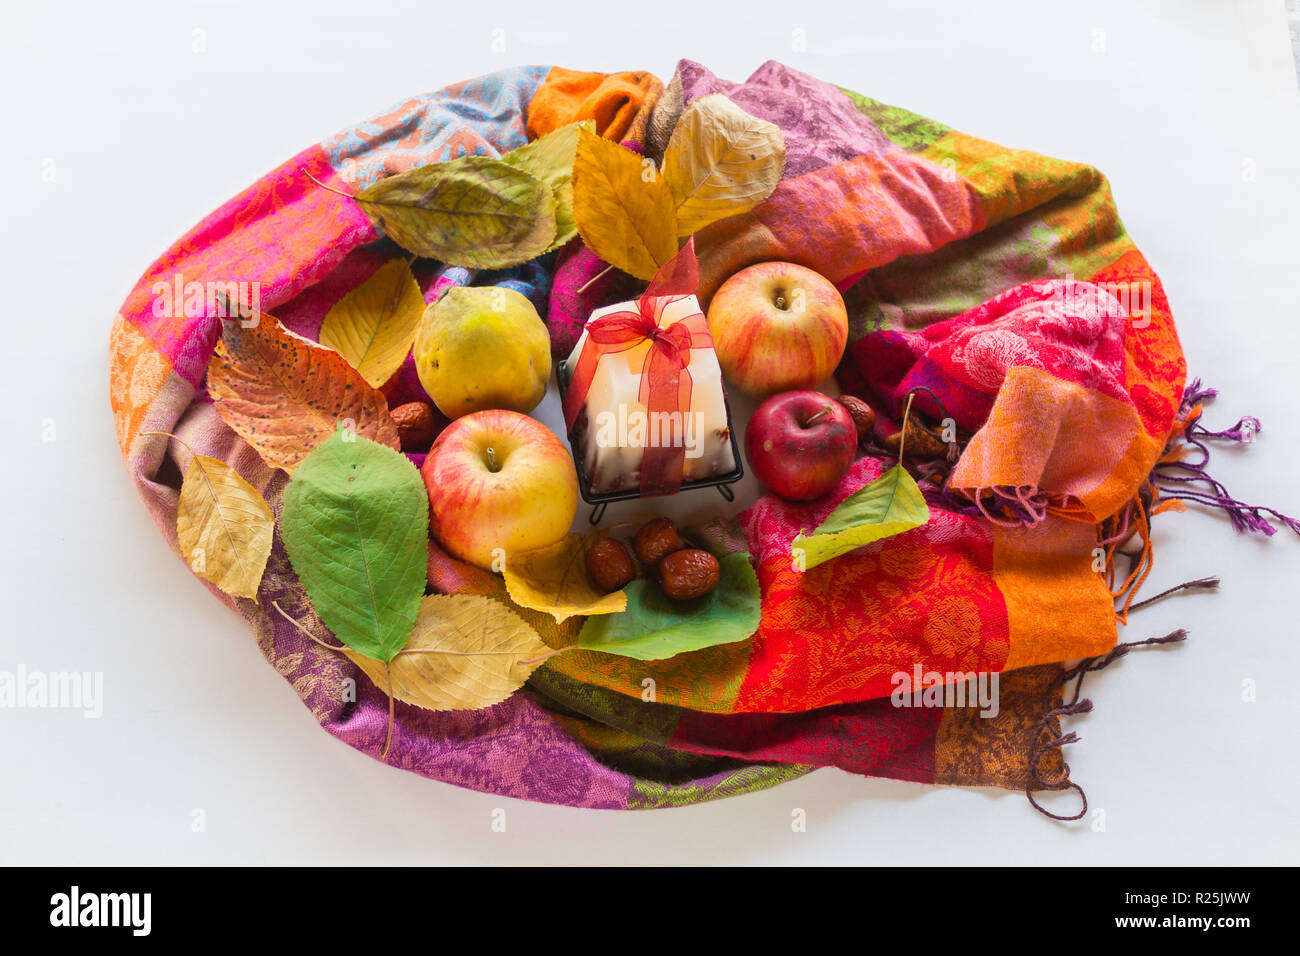 Autumn vibe colors with fruits - Stock Image